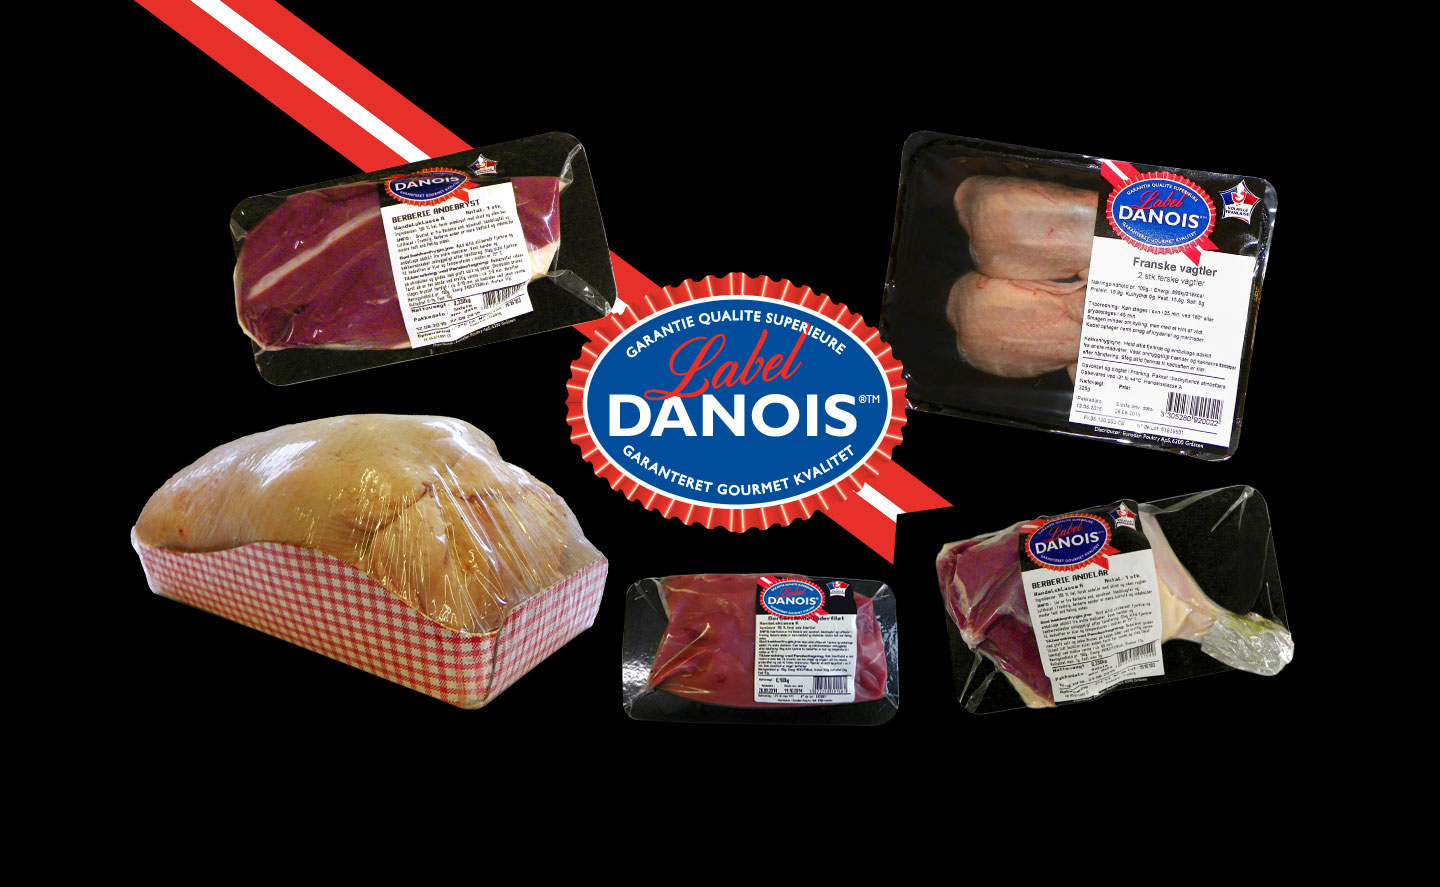 Label-Danois-Header